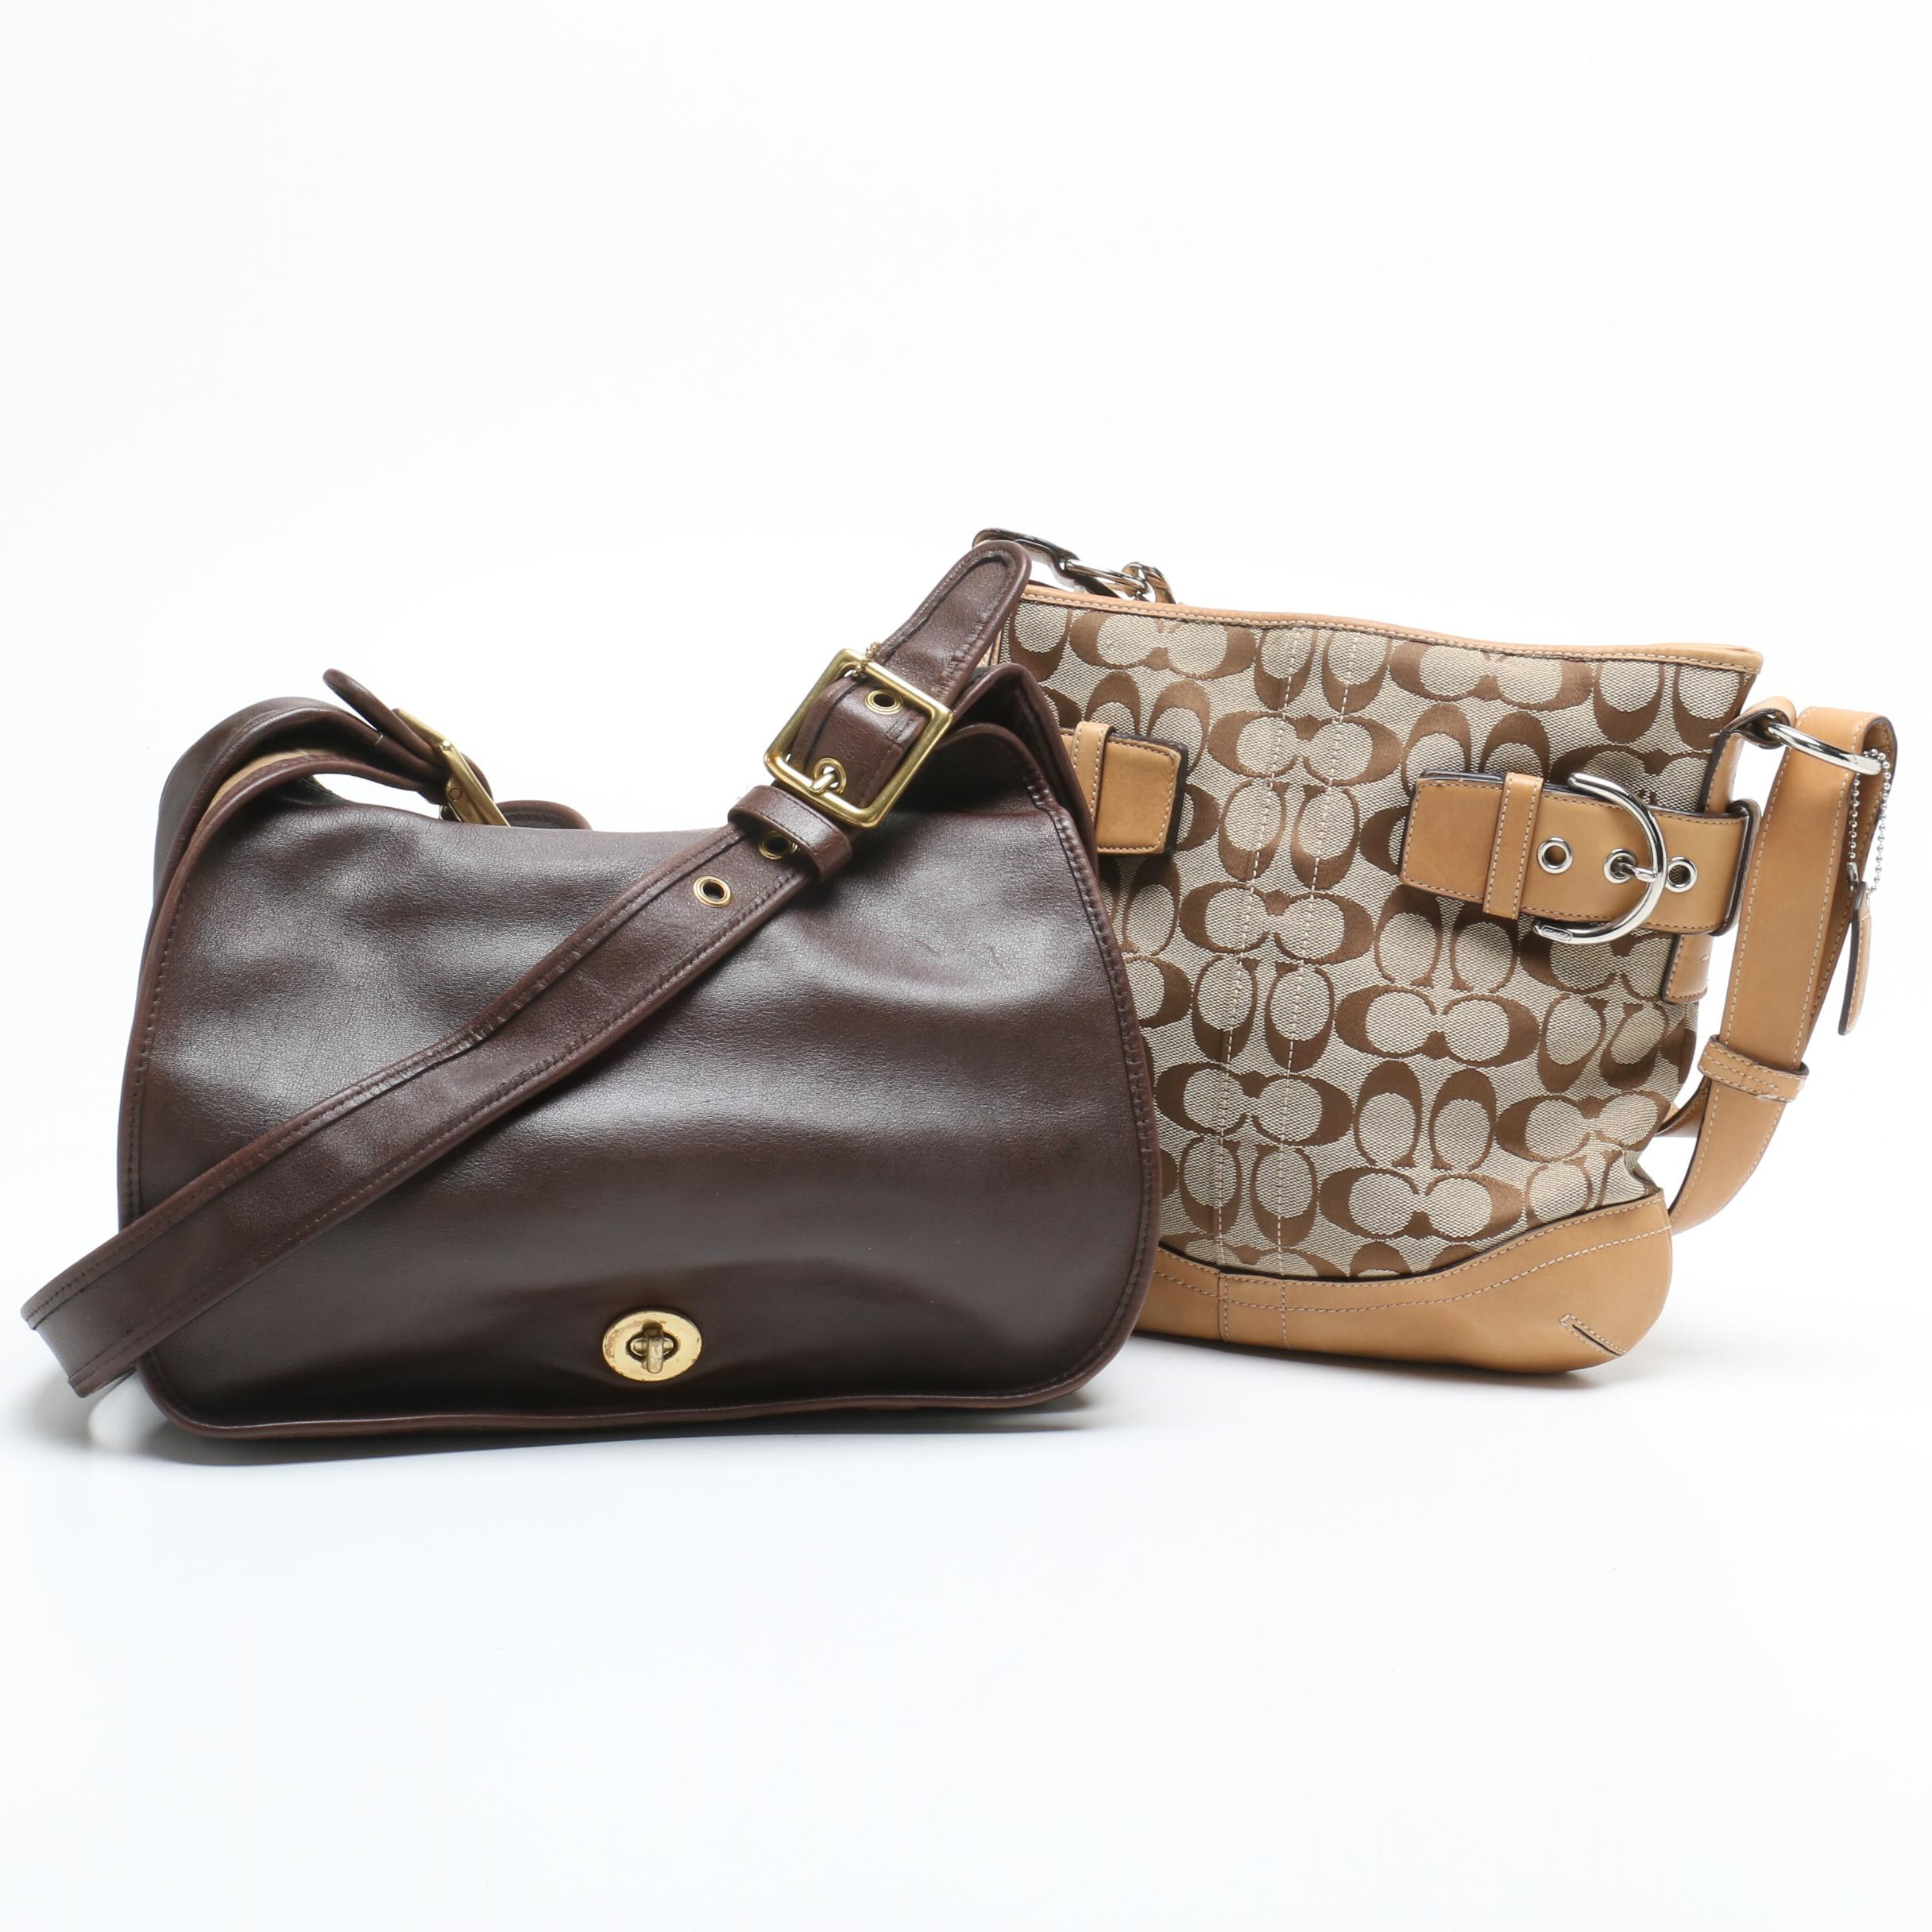 Coach Brown Leather Legacy Crescent Bag and Signature Soho Shoulder Bag